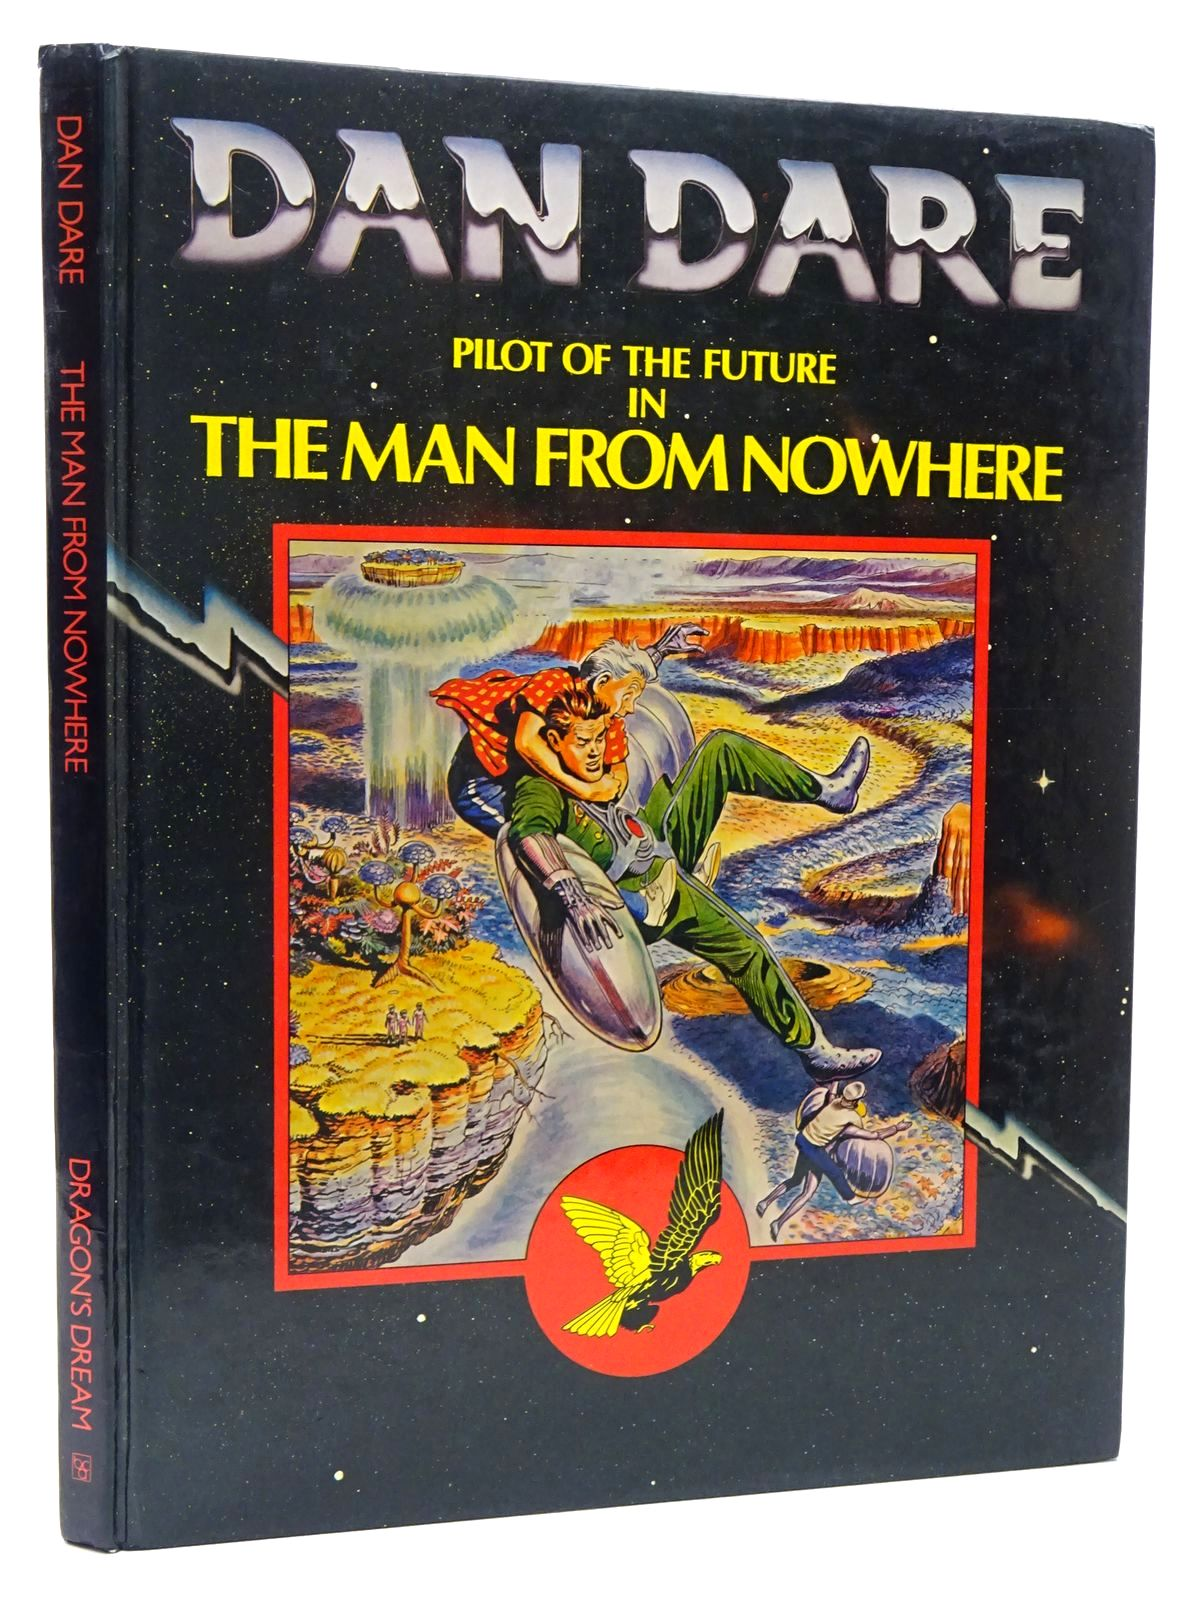 Photo of DAN DARE PILOT OF THE FUTURE IN THE MAN FROM NOWHERE published by Book Club Associates (STOCK CODE: 2124549)  for sale by Stella & Rose's Books